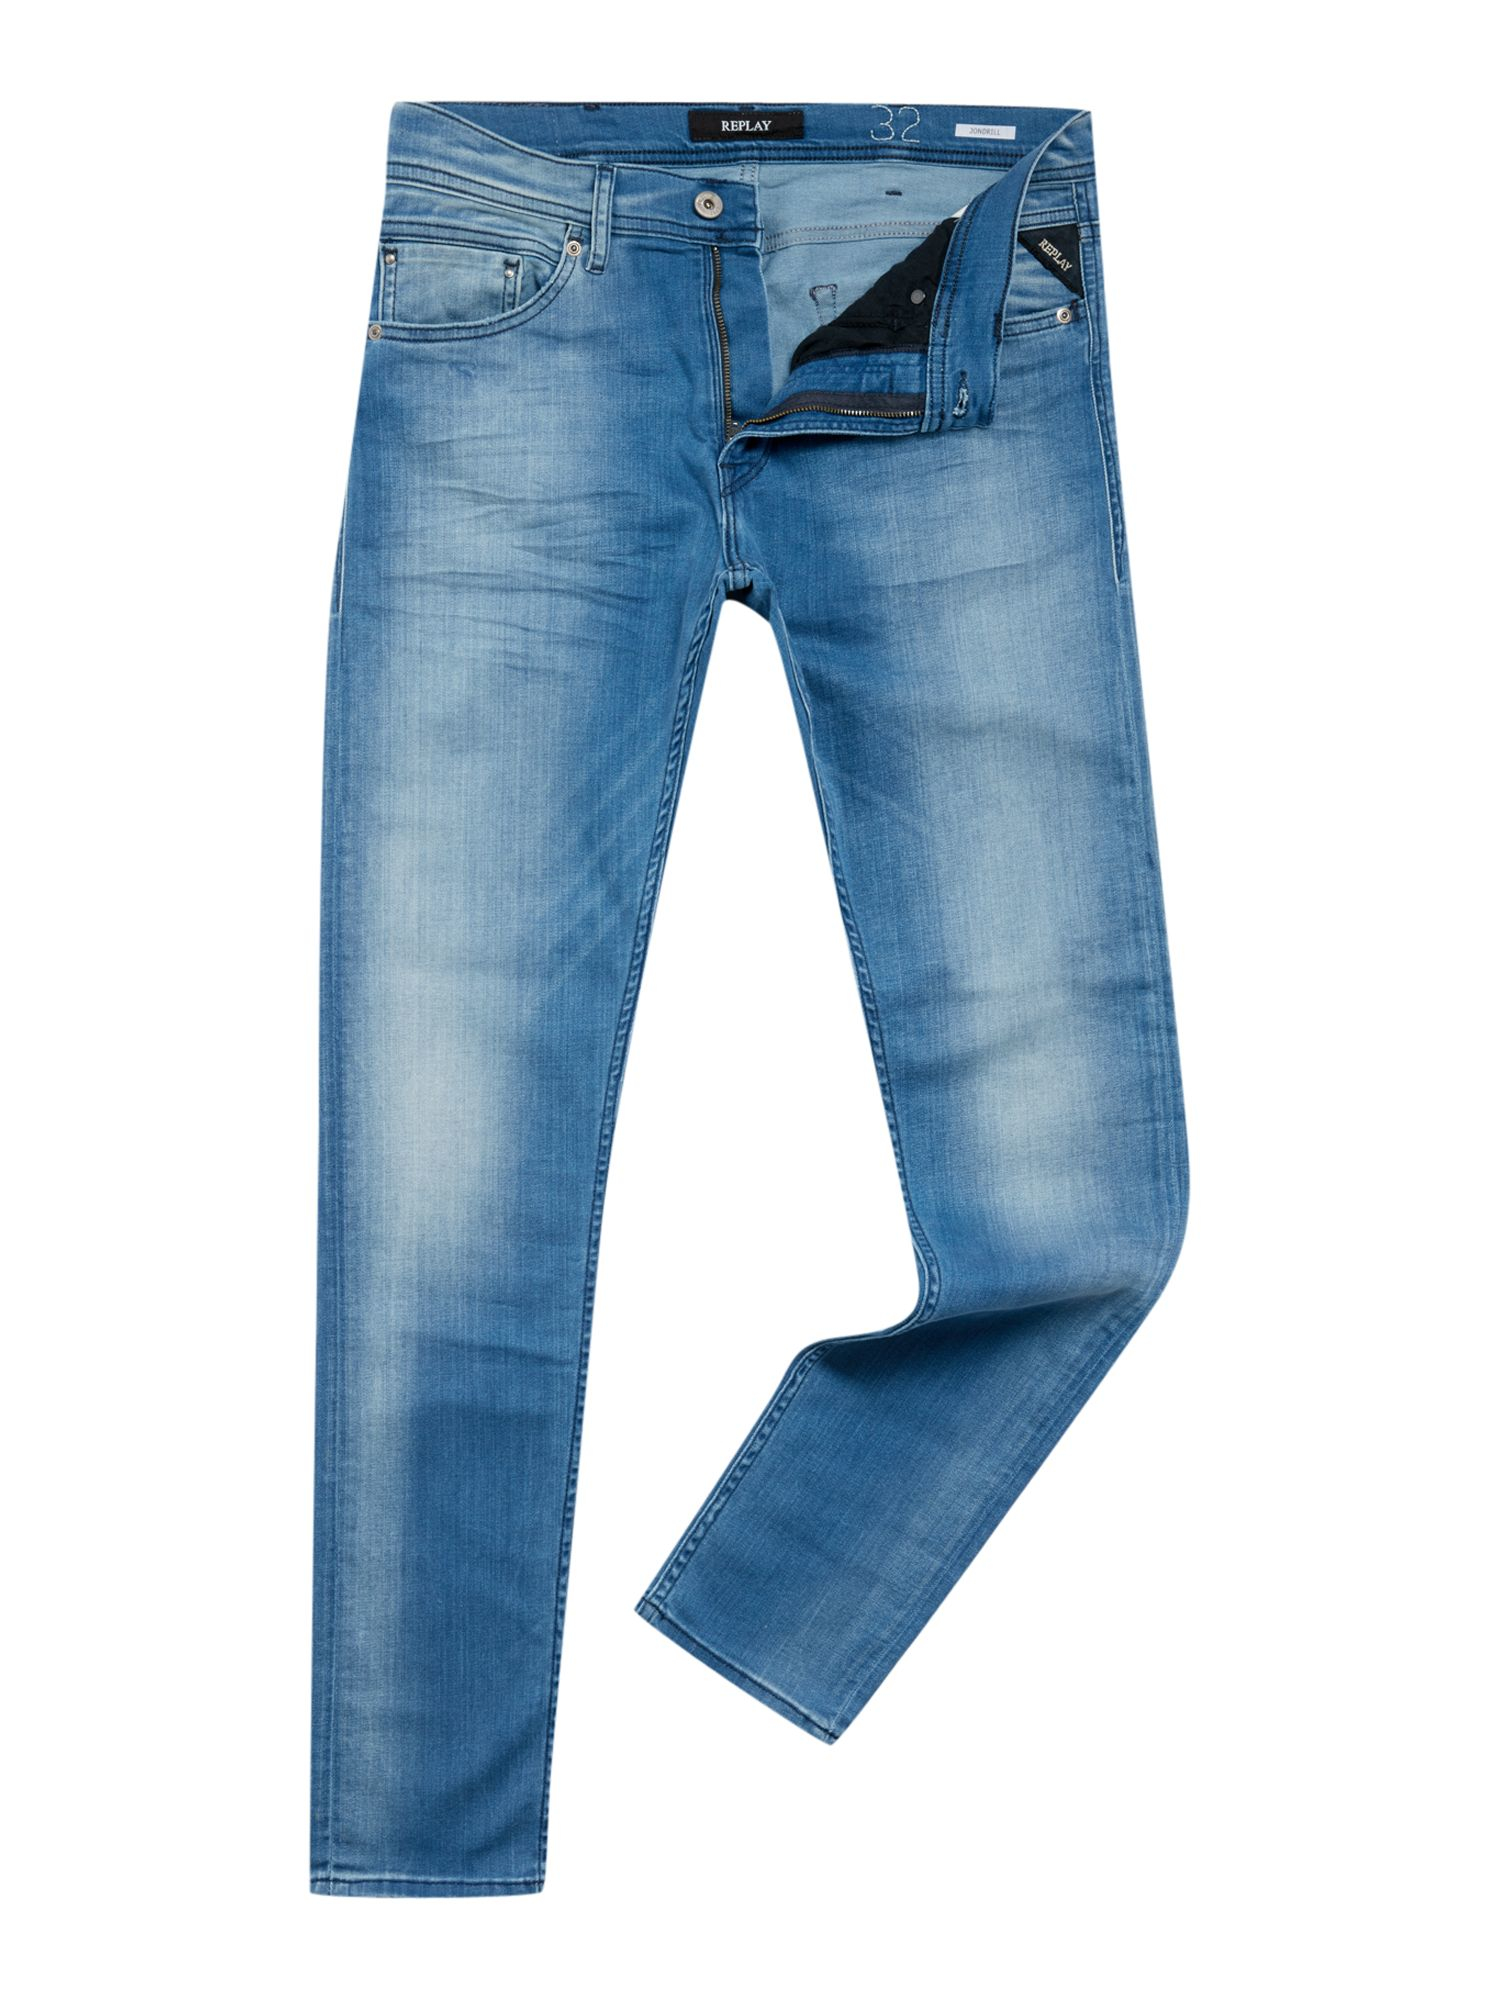 Replay Denim 99 Jondrill Skinny Fit Jeans in Blue for Men